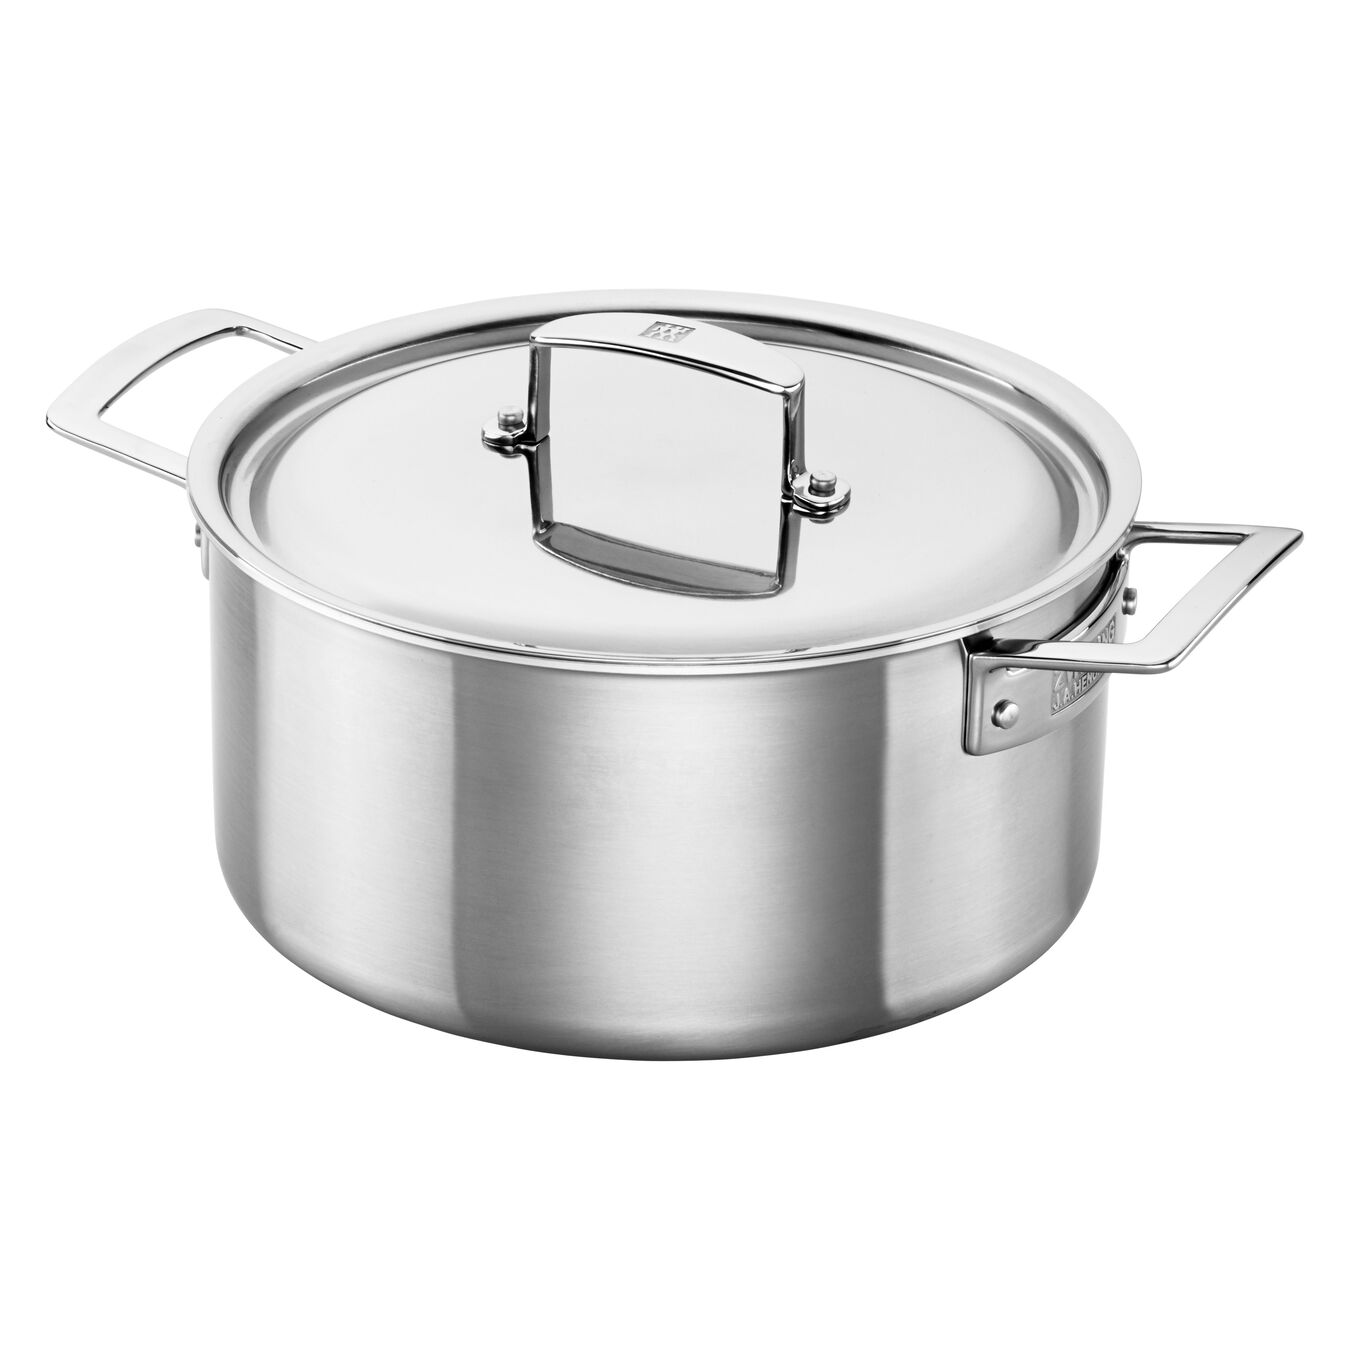 5.25 l 18/10 Stainless Steel Stock pot,,large 1